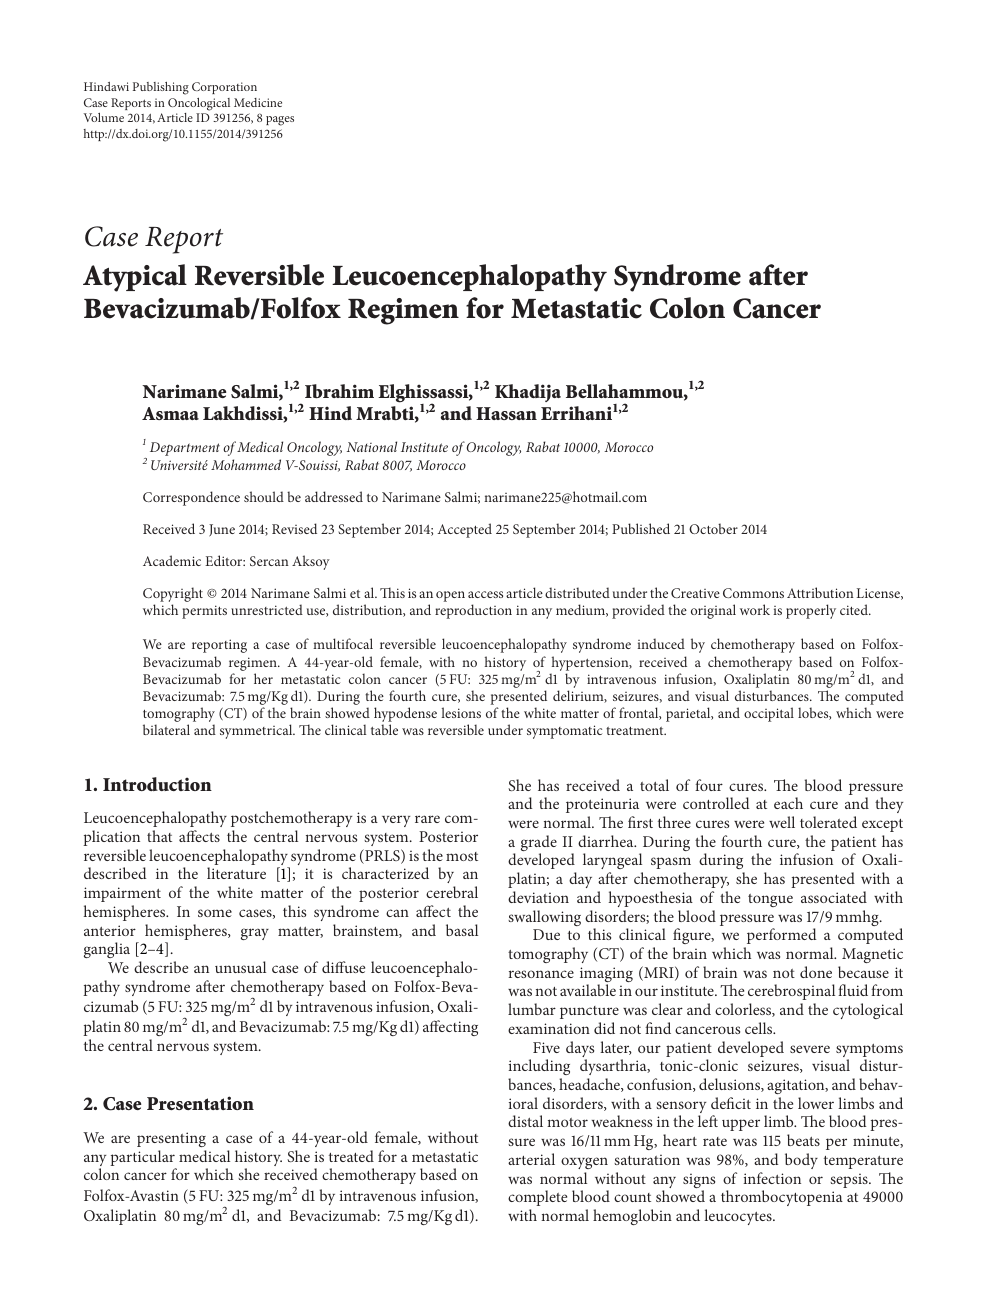 Atypical Reversible Leucoencephalopathy Syndrome After Bevacizumab Folfox Regimen For Metastatic Colon Cancer Topic Of Research Paper In Clinical Medicine Download Scholarly Article Pdf And Read For Free On Cyberleninka Open Science Hub